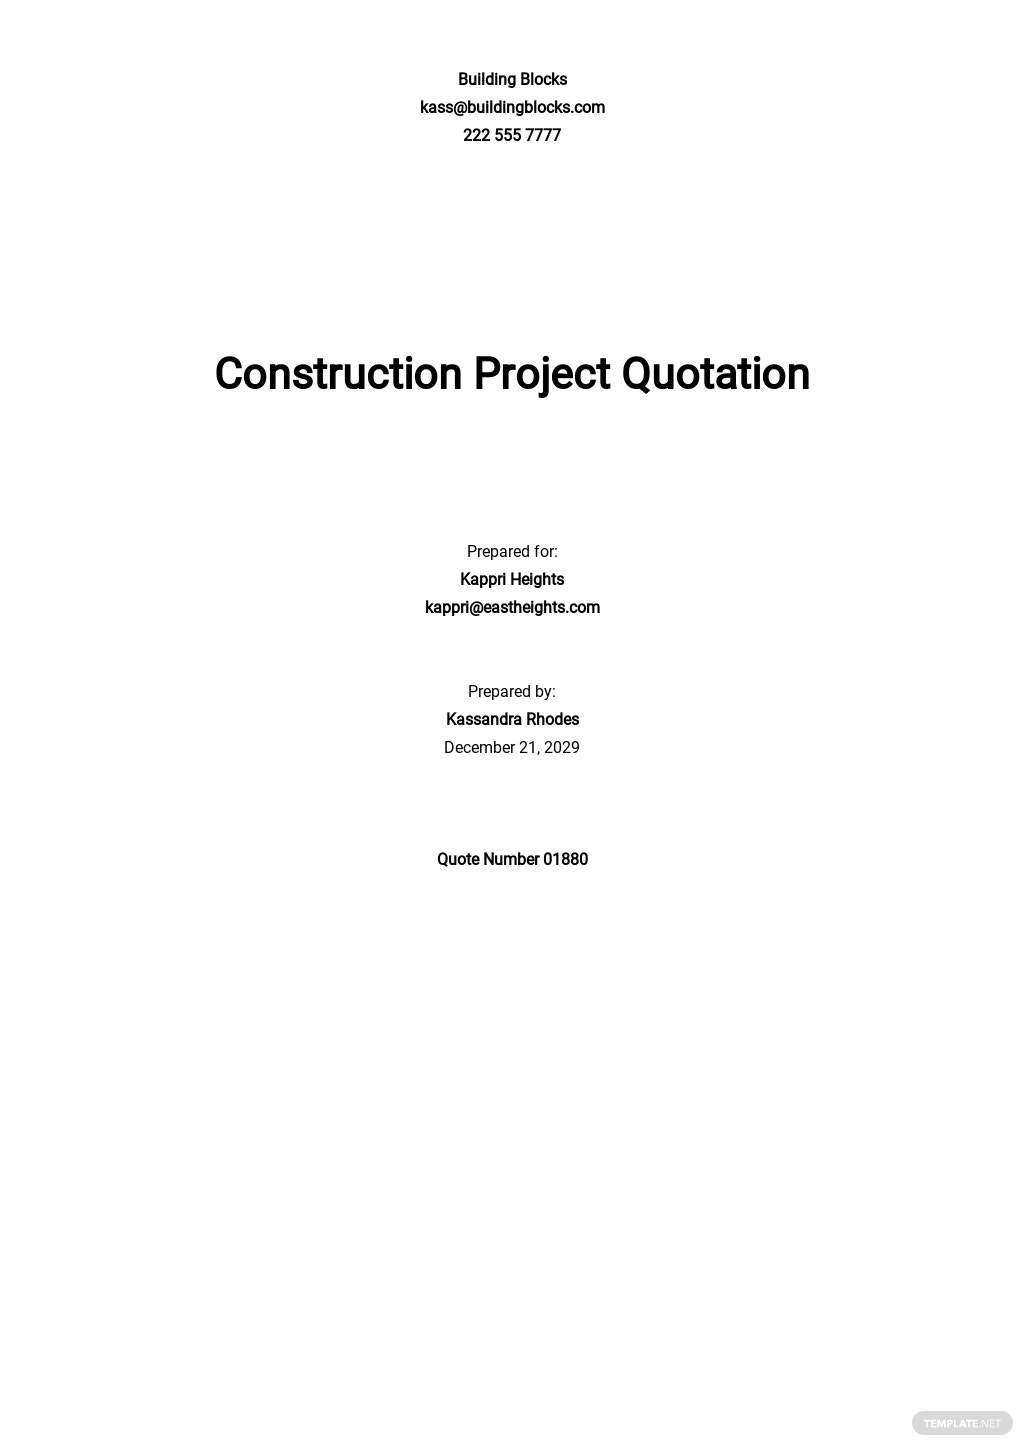 Construction Project Quotation Template